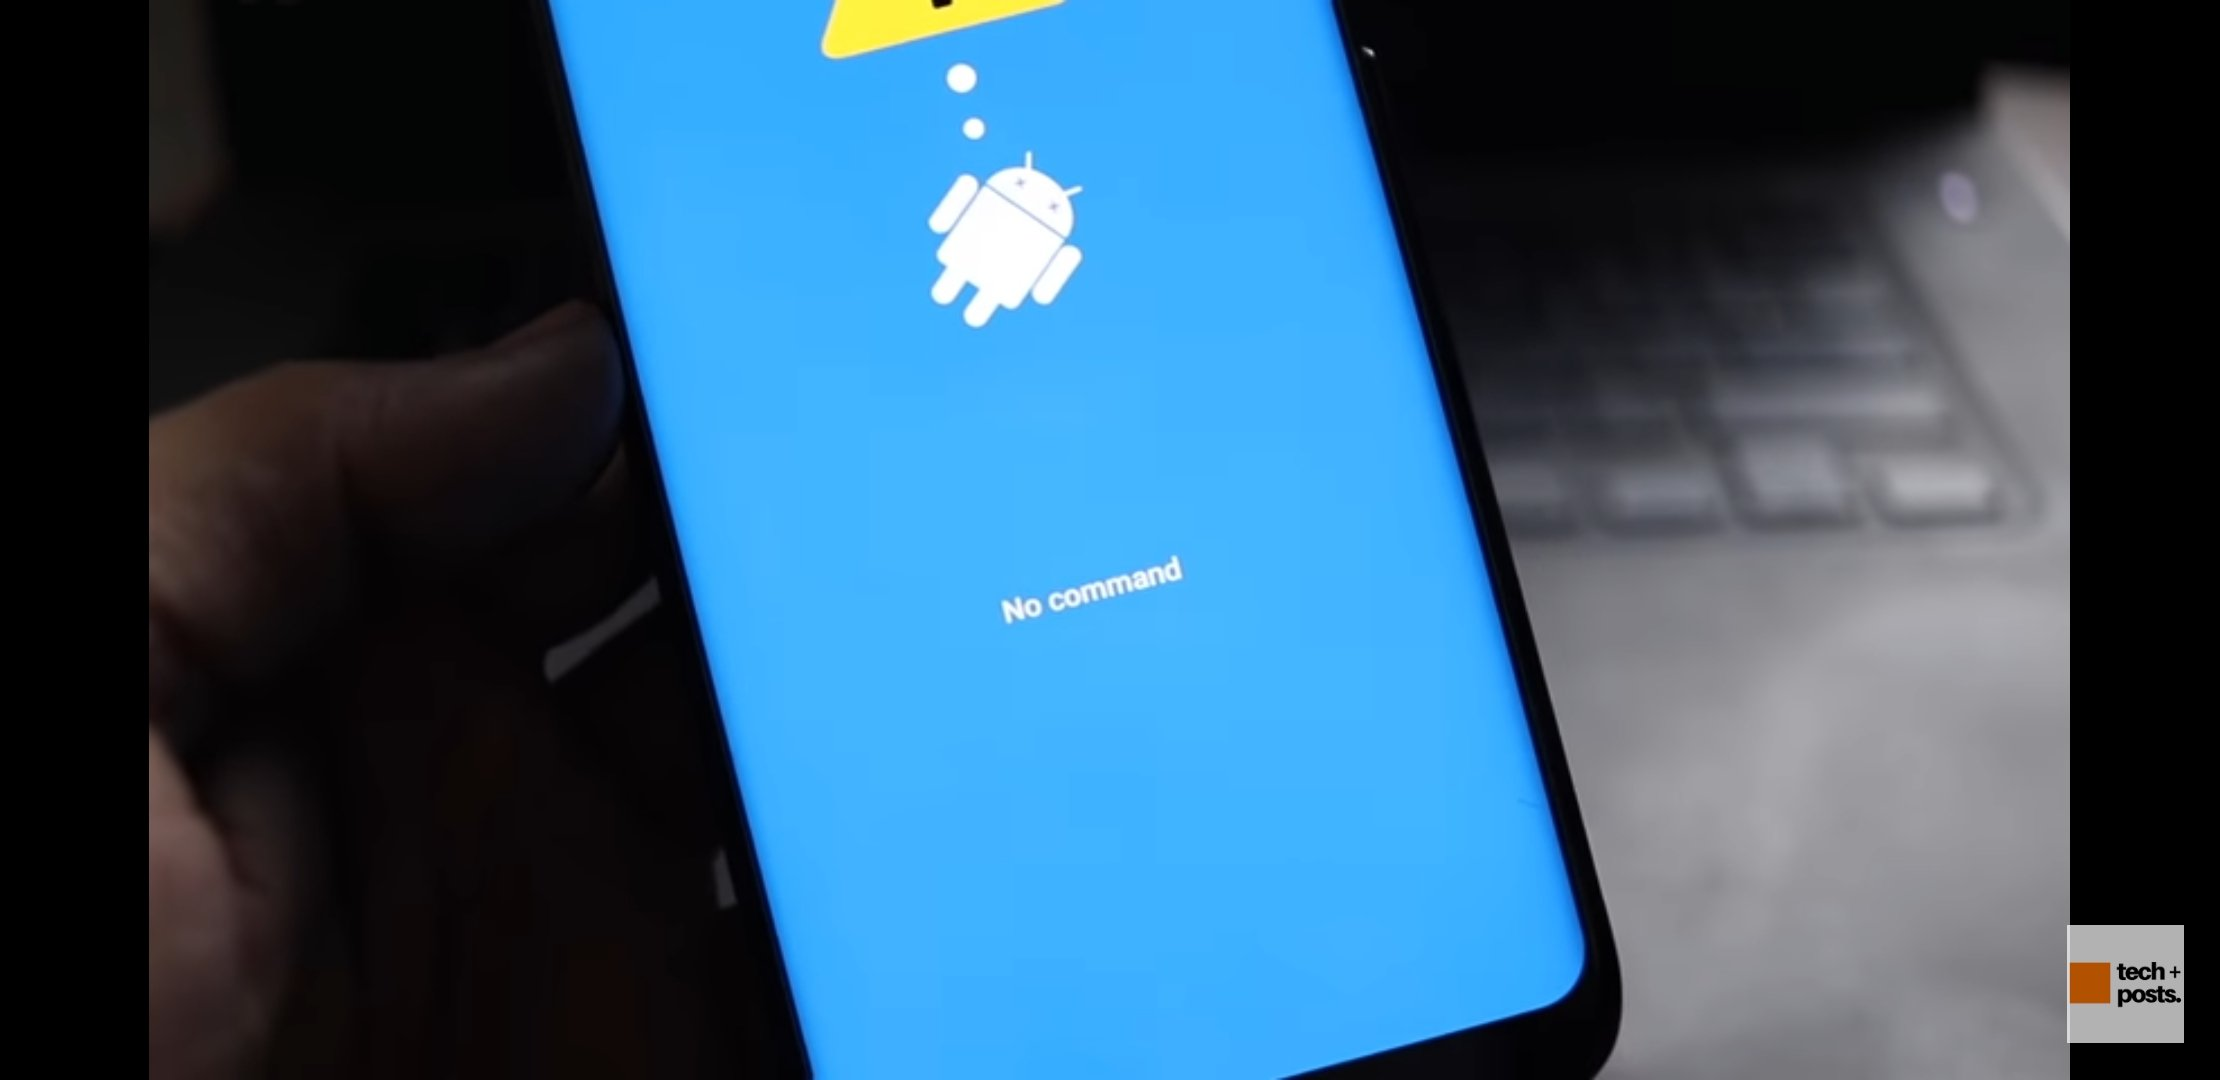 Root samsung s8 android 9 0 | Android P 9 0 Samsung S8/S8+/S9/S9+